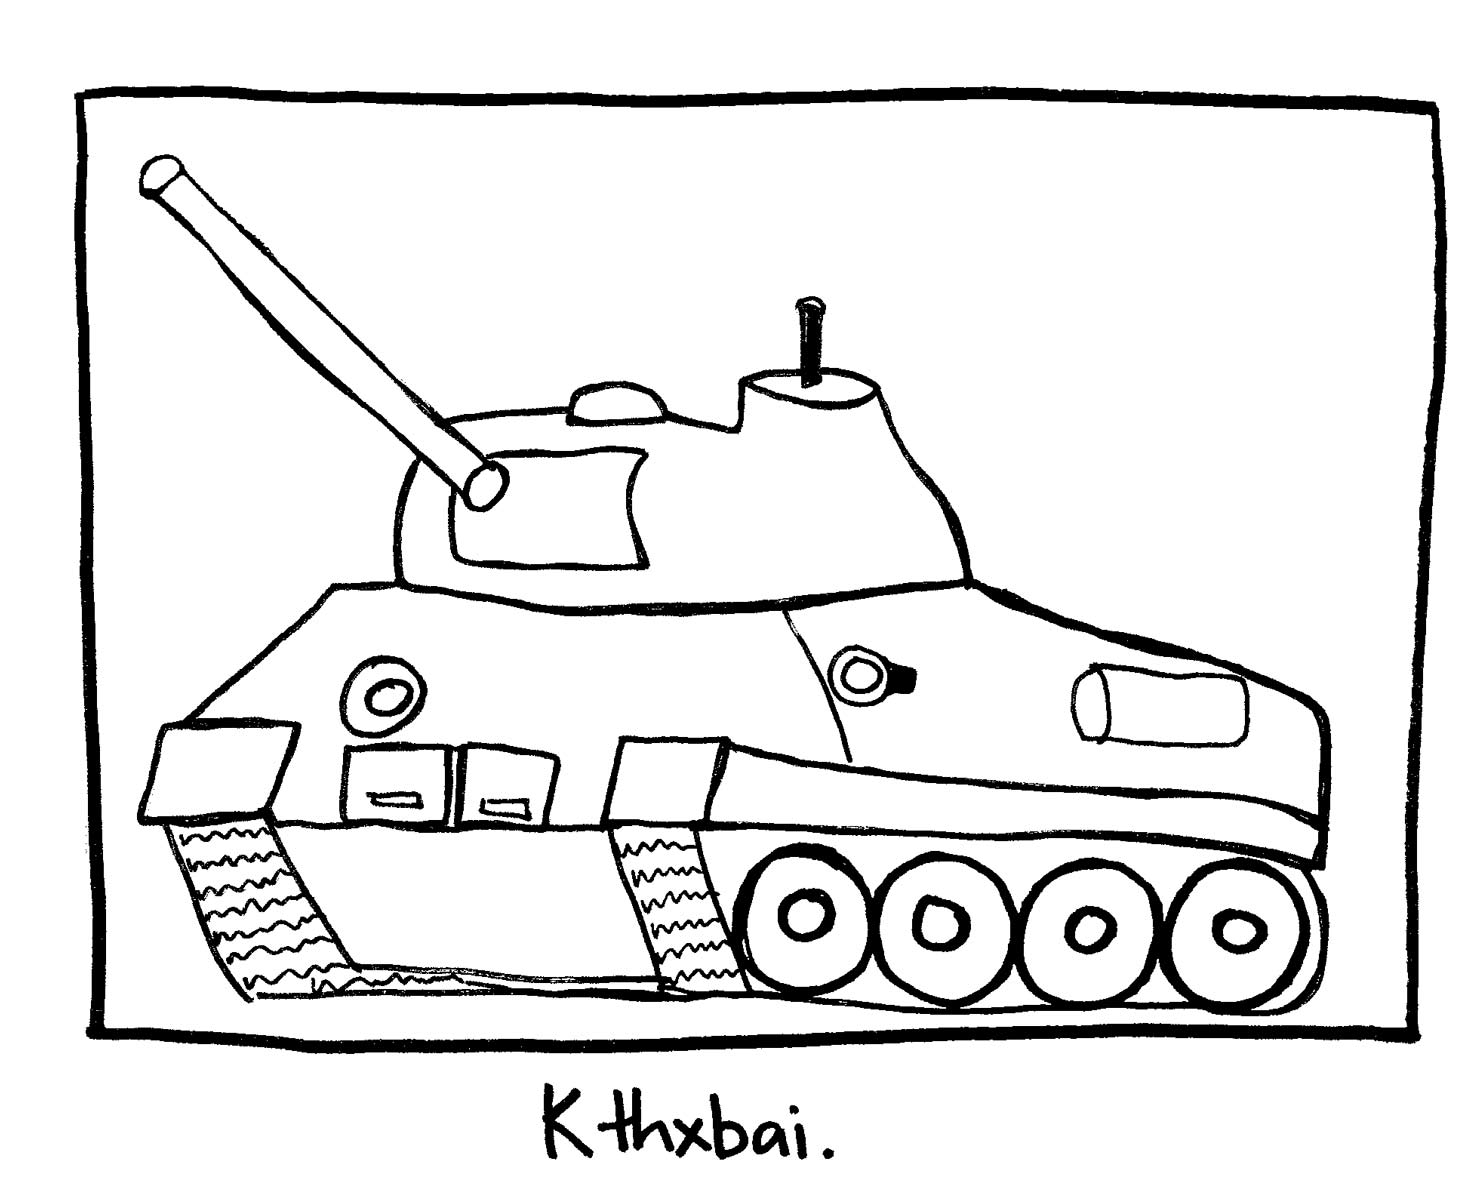 image of an army tank. Labeled: K thx bai.